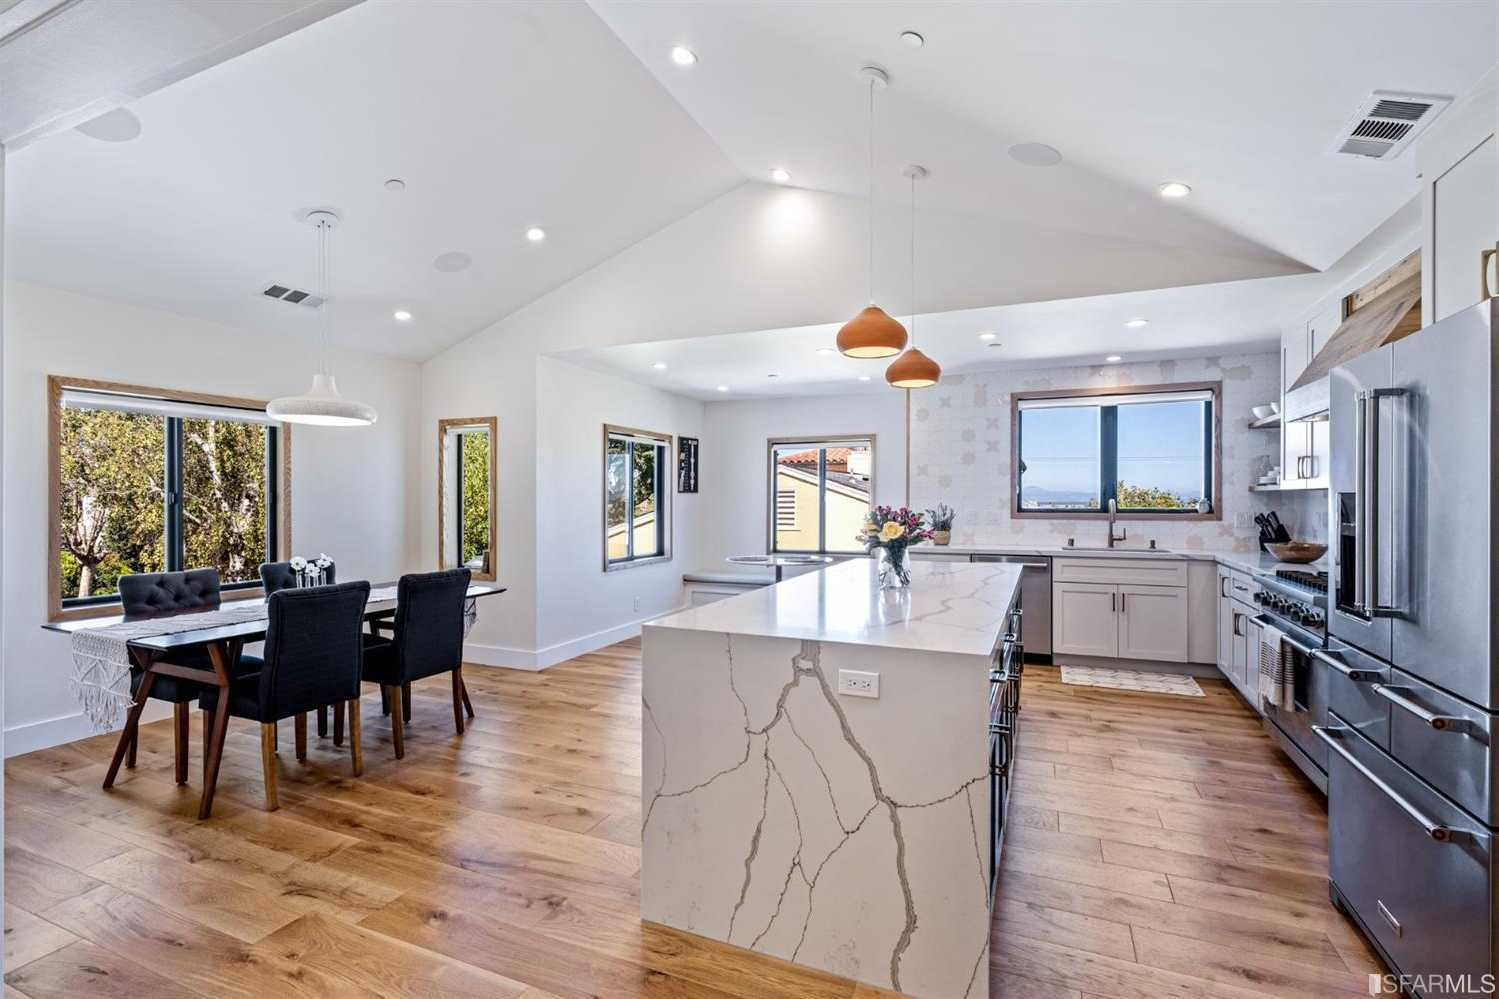 $2,998,000 - 5Br/4Ba -  for Sale in Millbrae